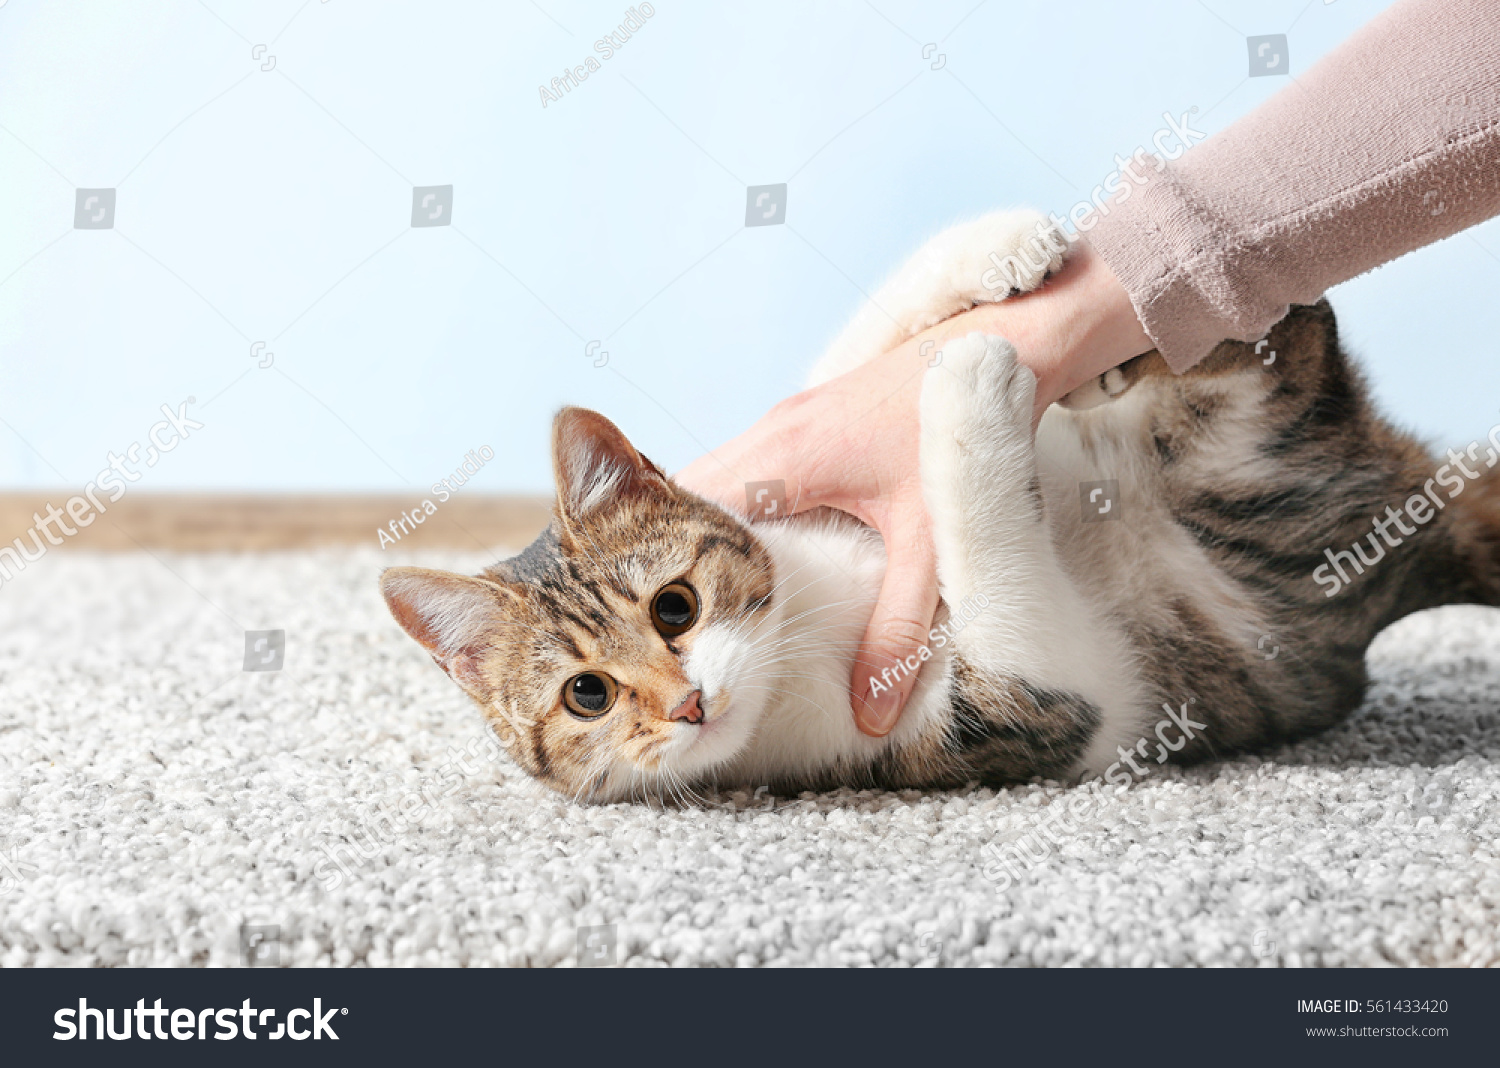 Cute Funny Cat Playing Owner While Stock